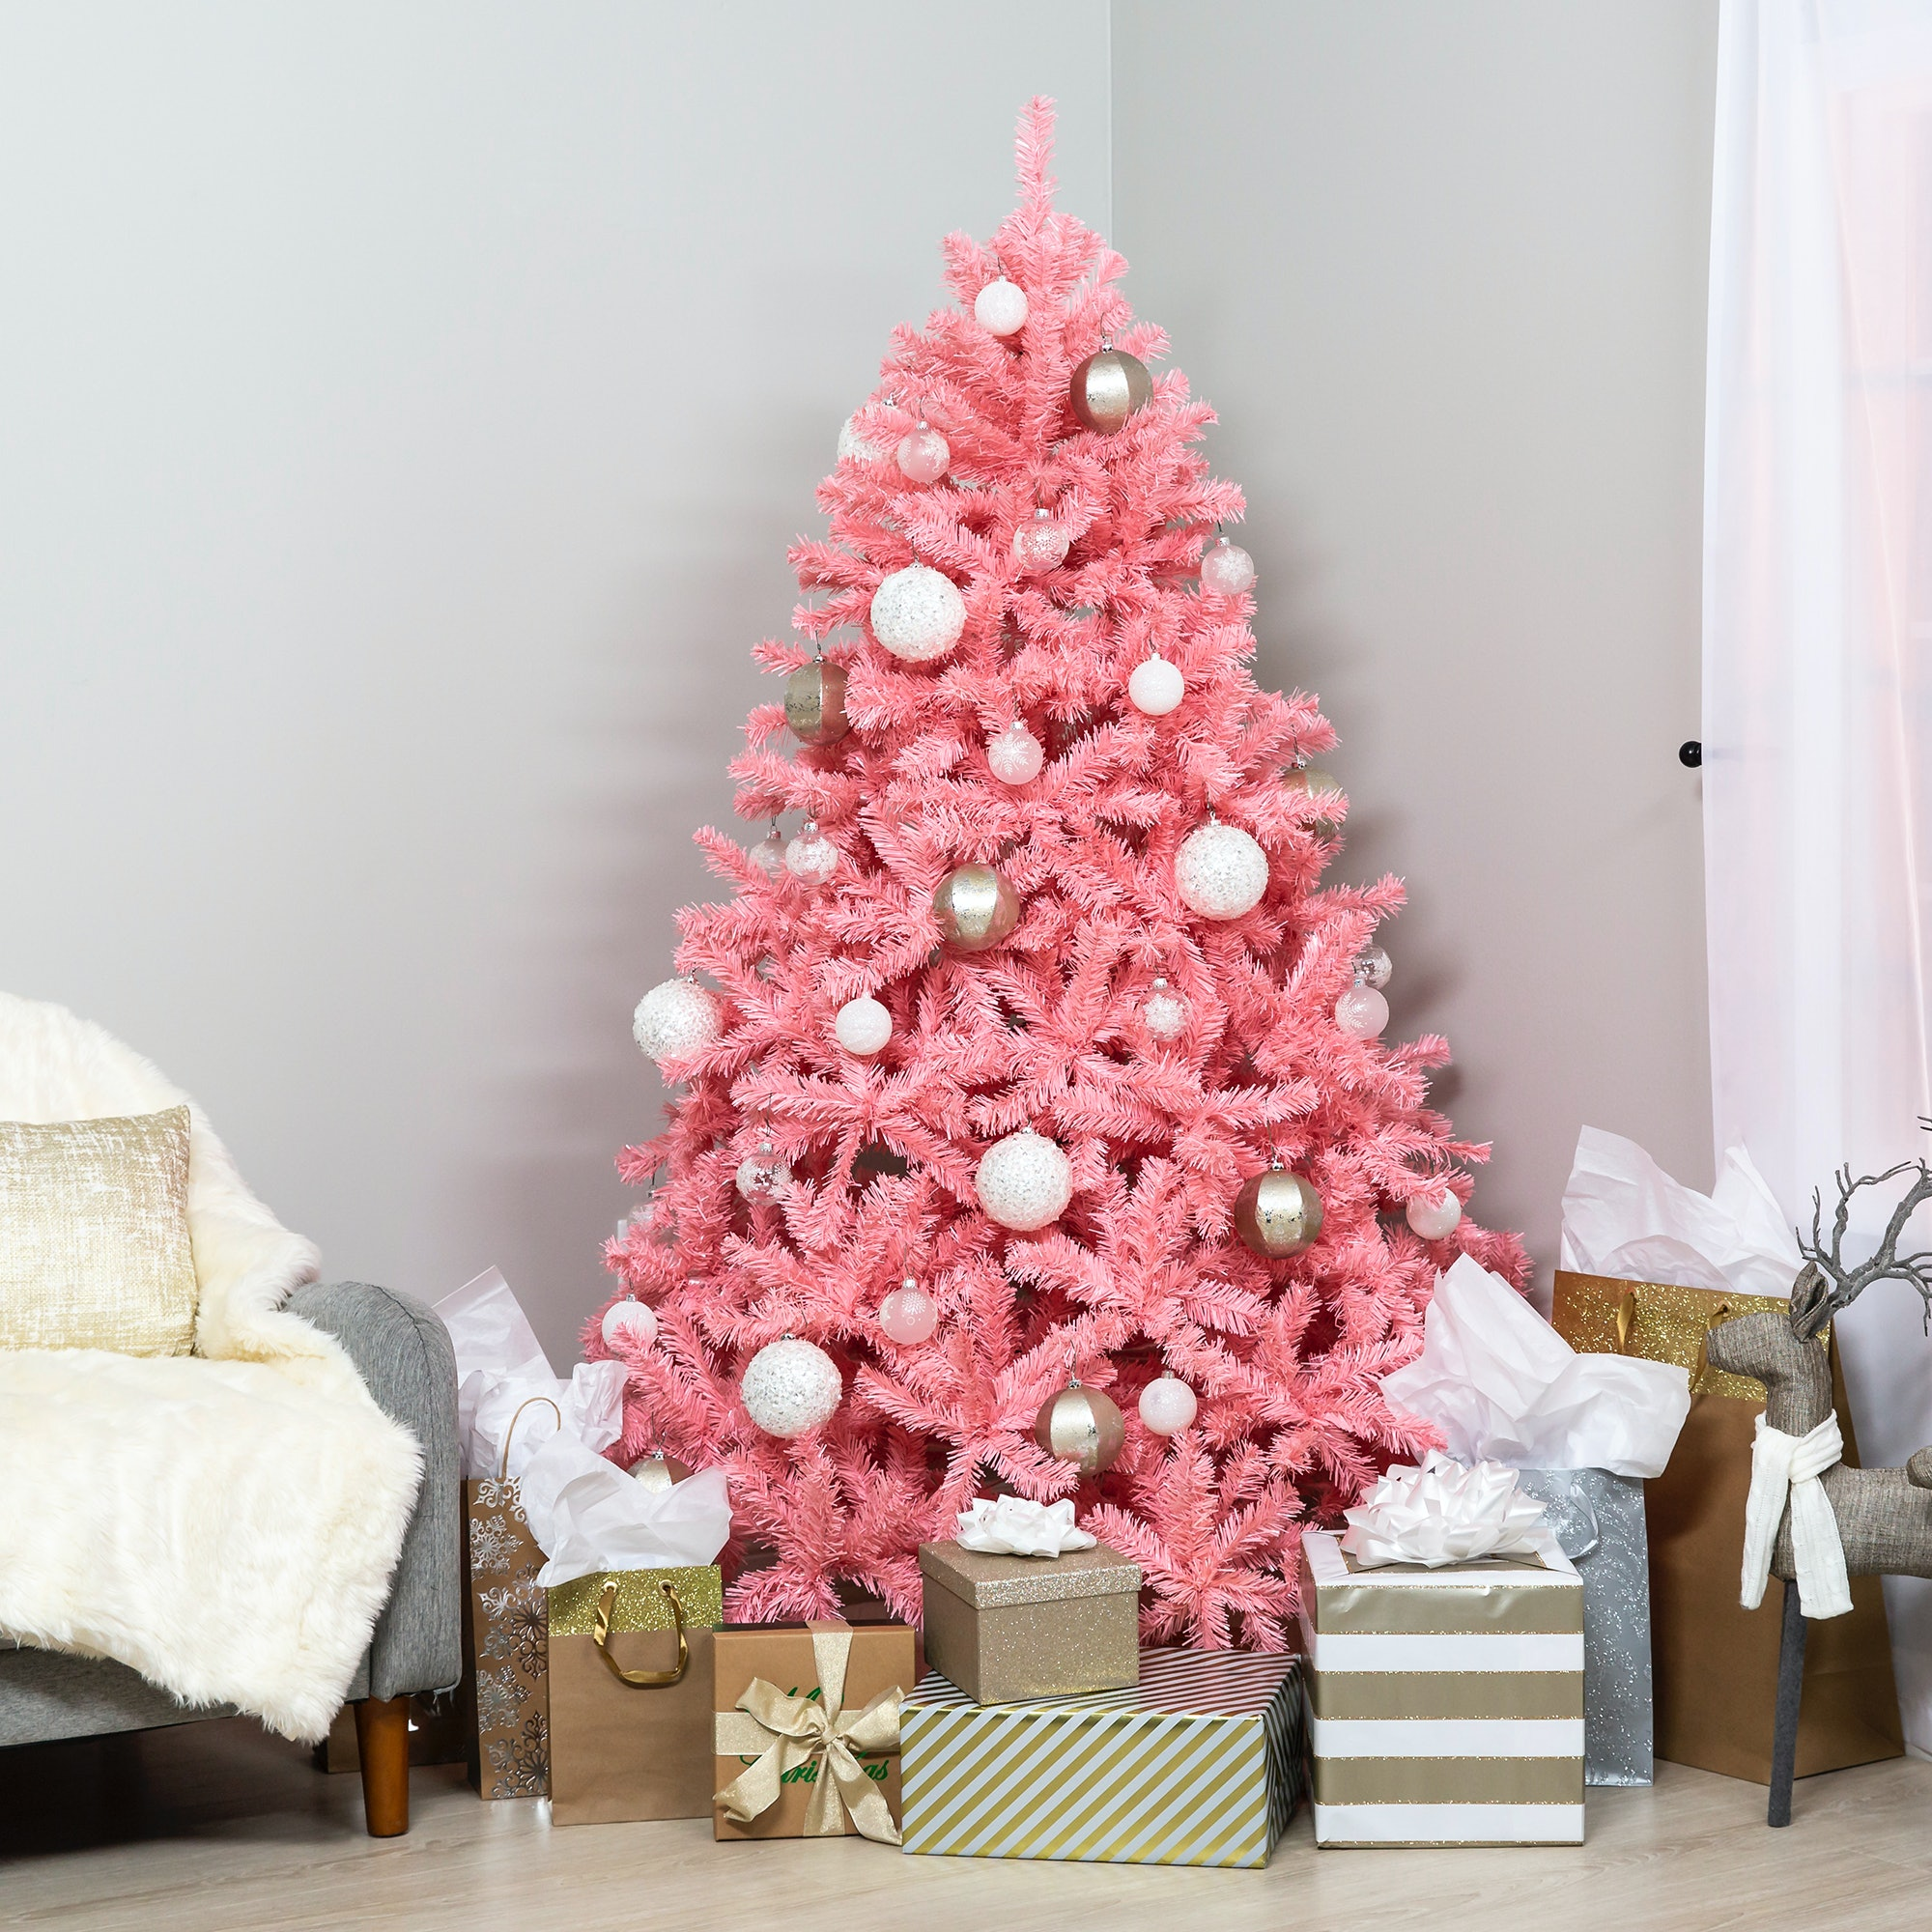 Pink Christmas Trees.Millennial Pink Christmas Trees Are Here To Make All Your